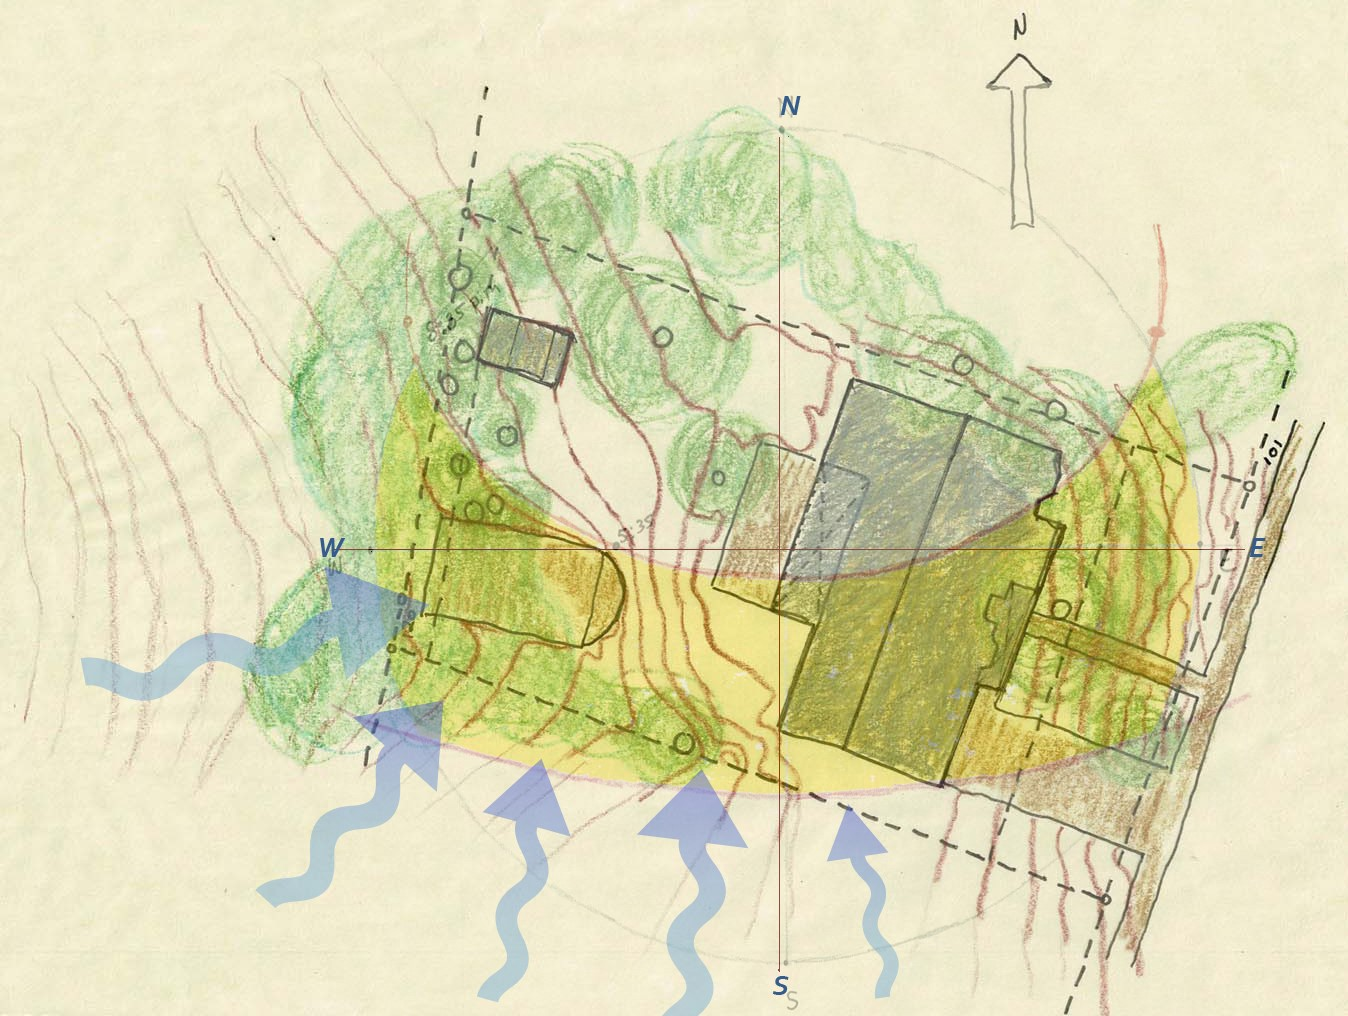 Site plan with existing building sun modeling and prevailing winds.